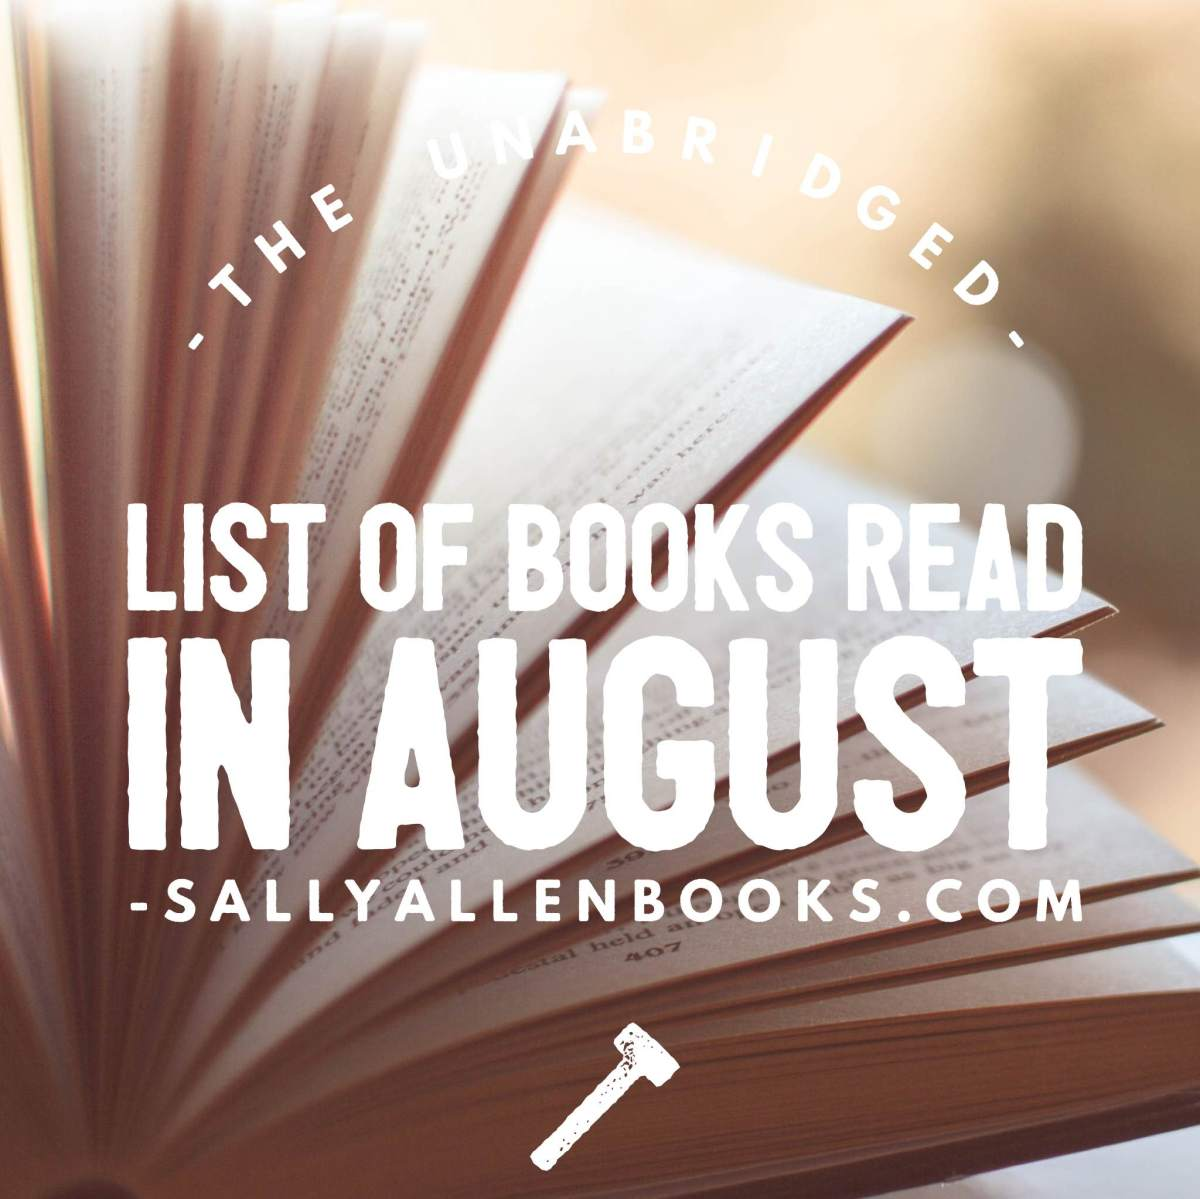 The unabridged list of books read in August